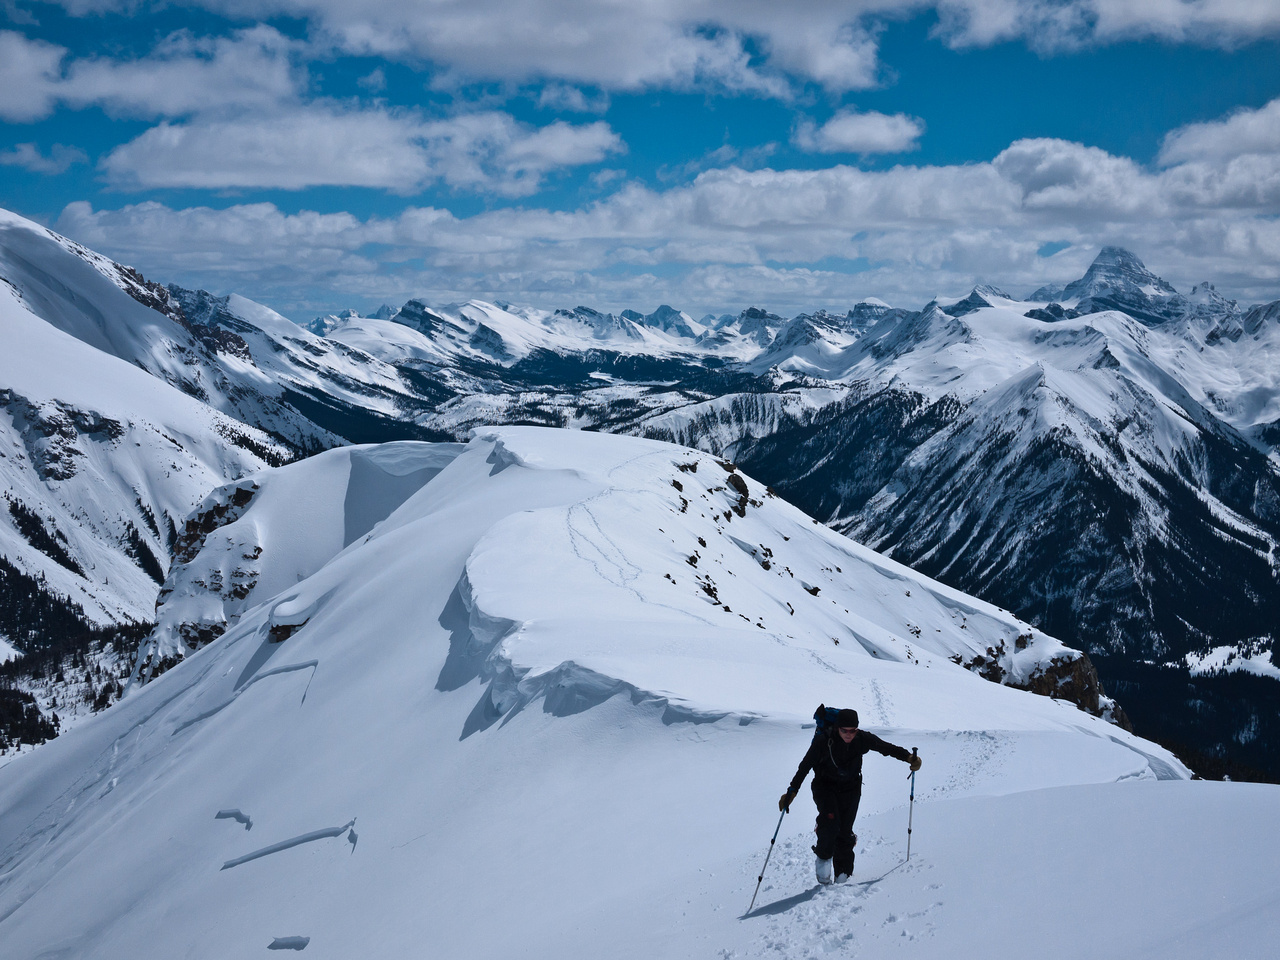 Traversing snow slopes to the summit.